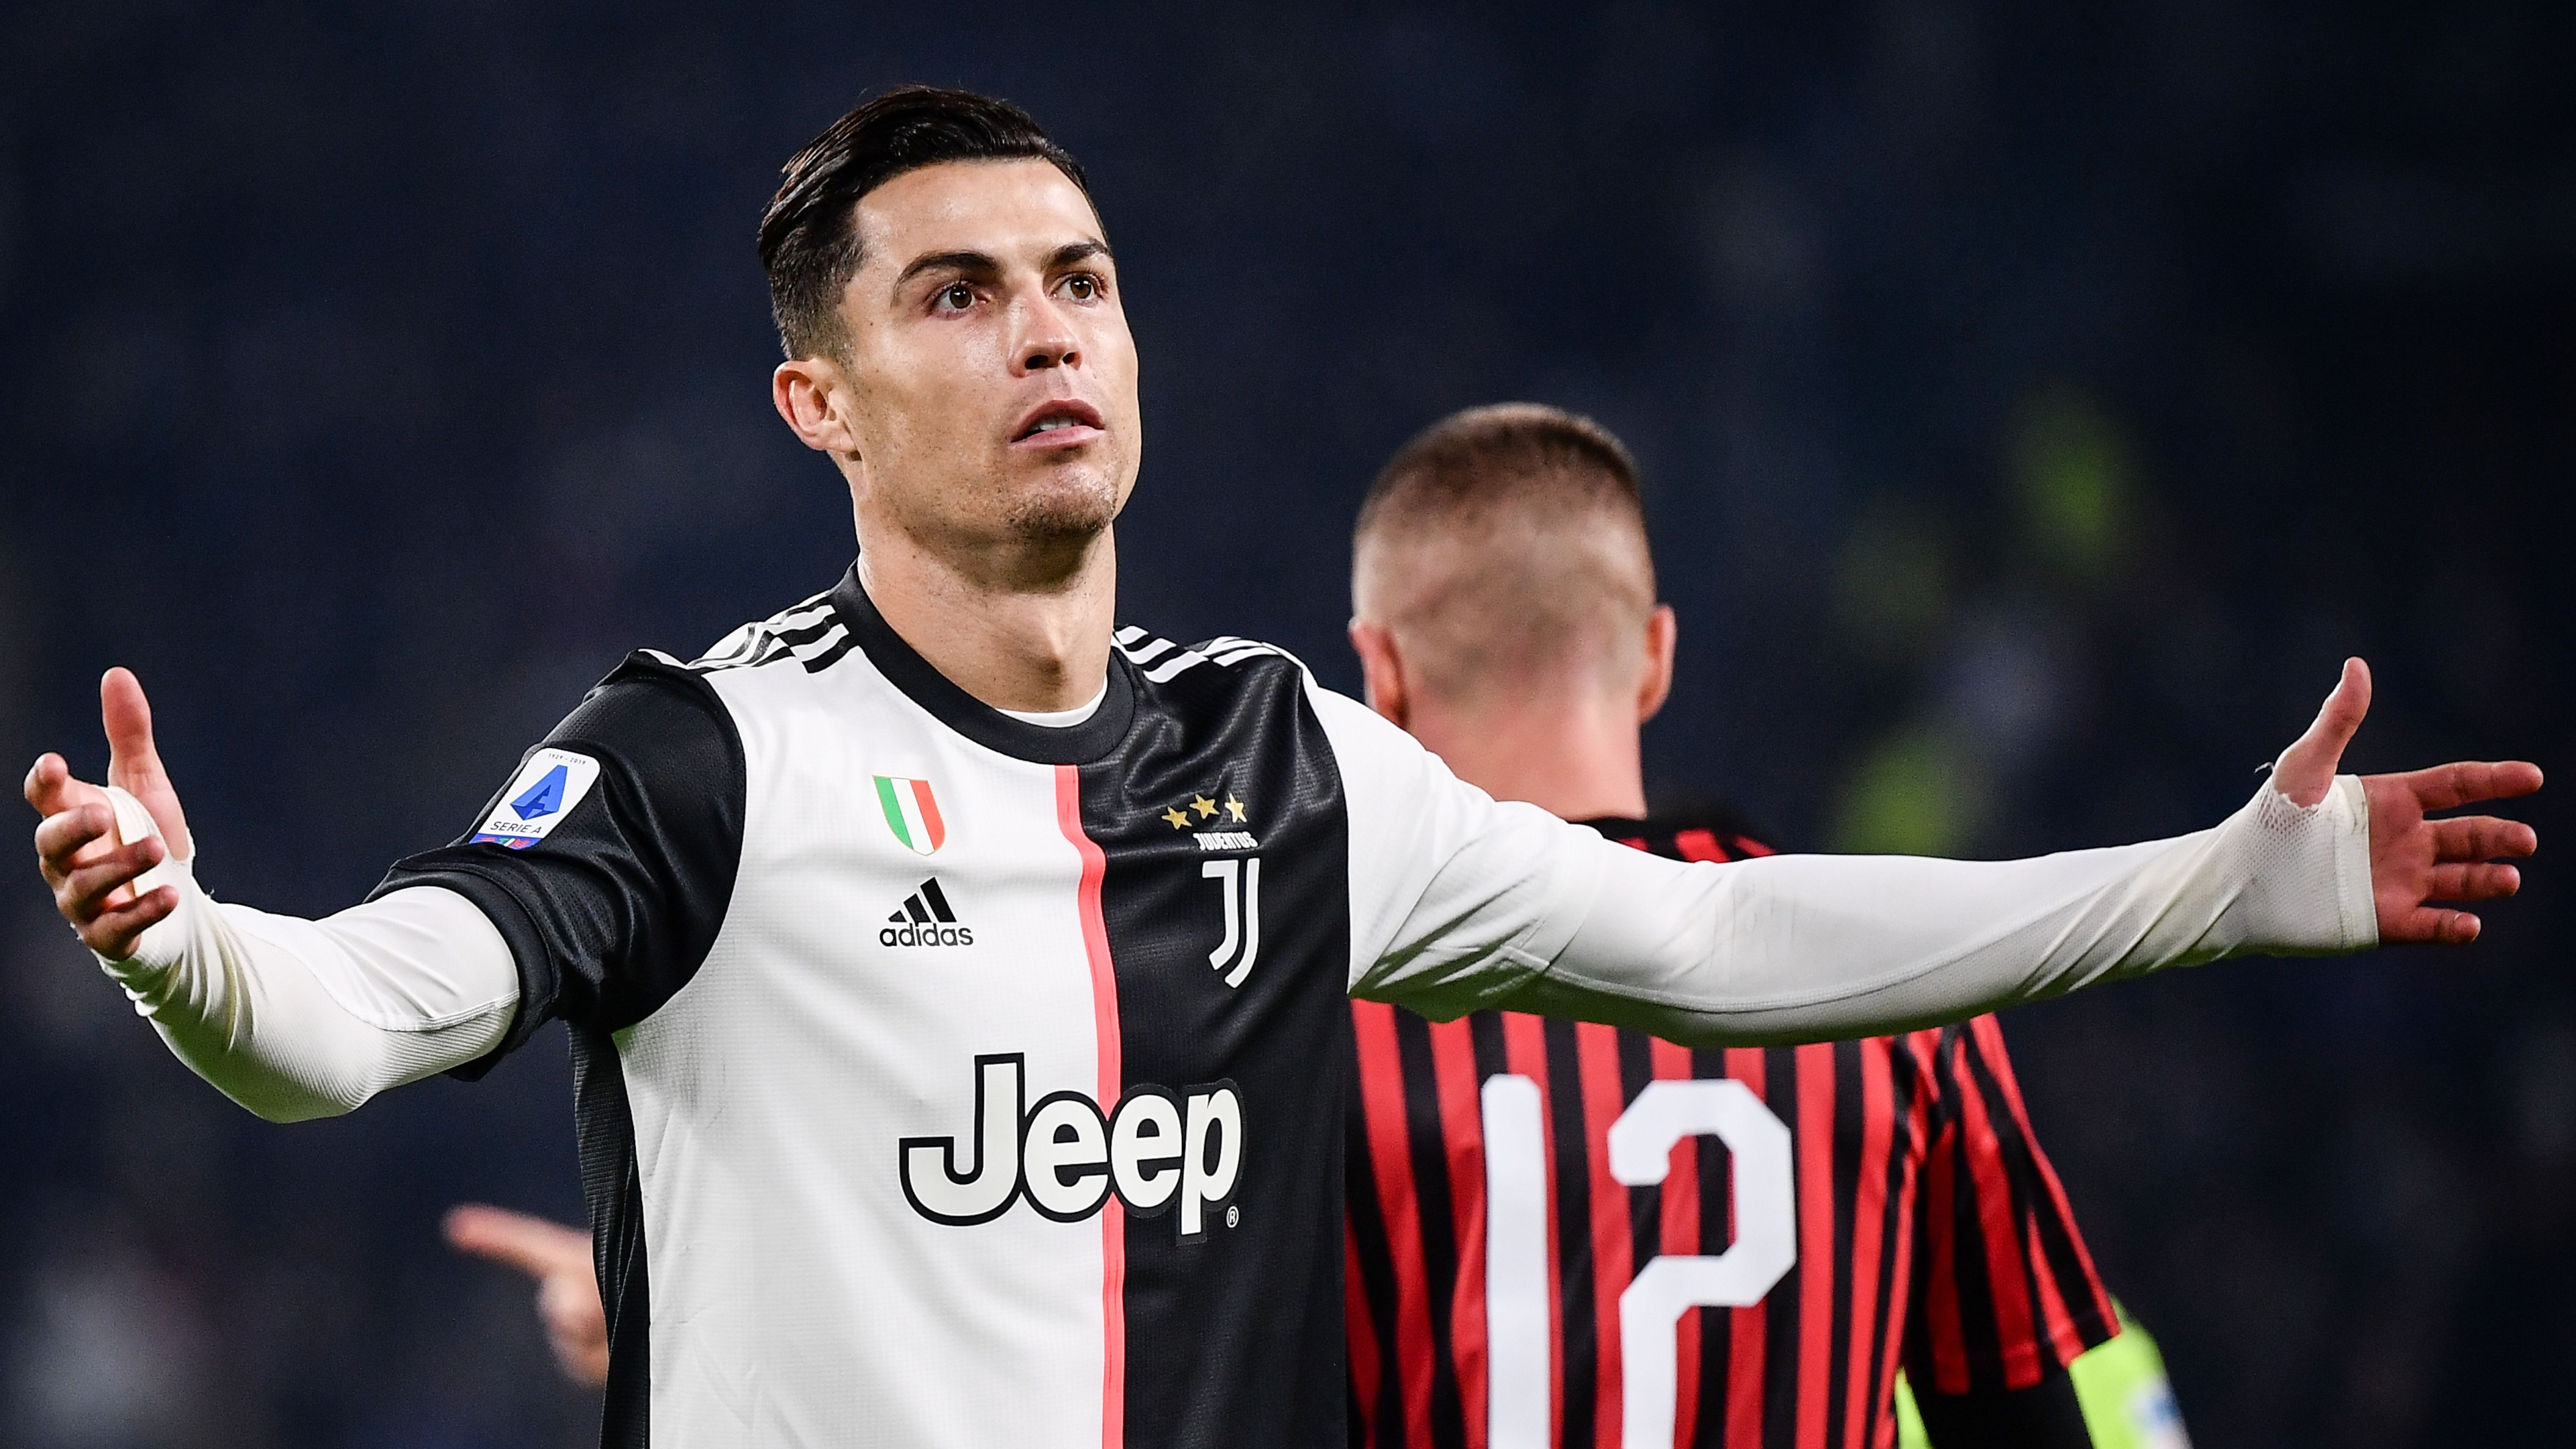 Ronaldo leaves stadium before final whistle after being substituted